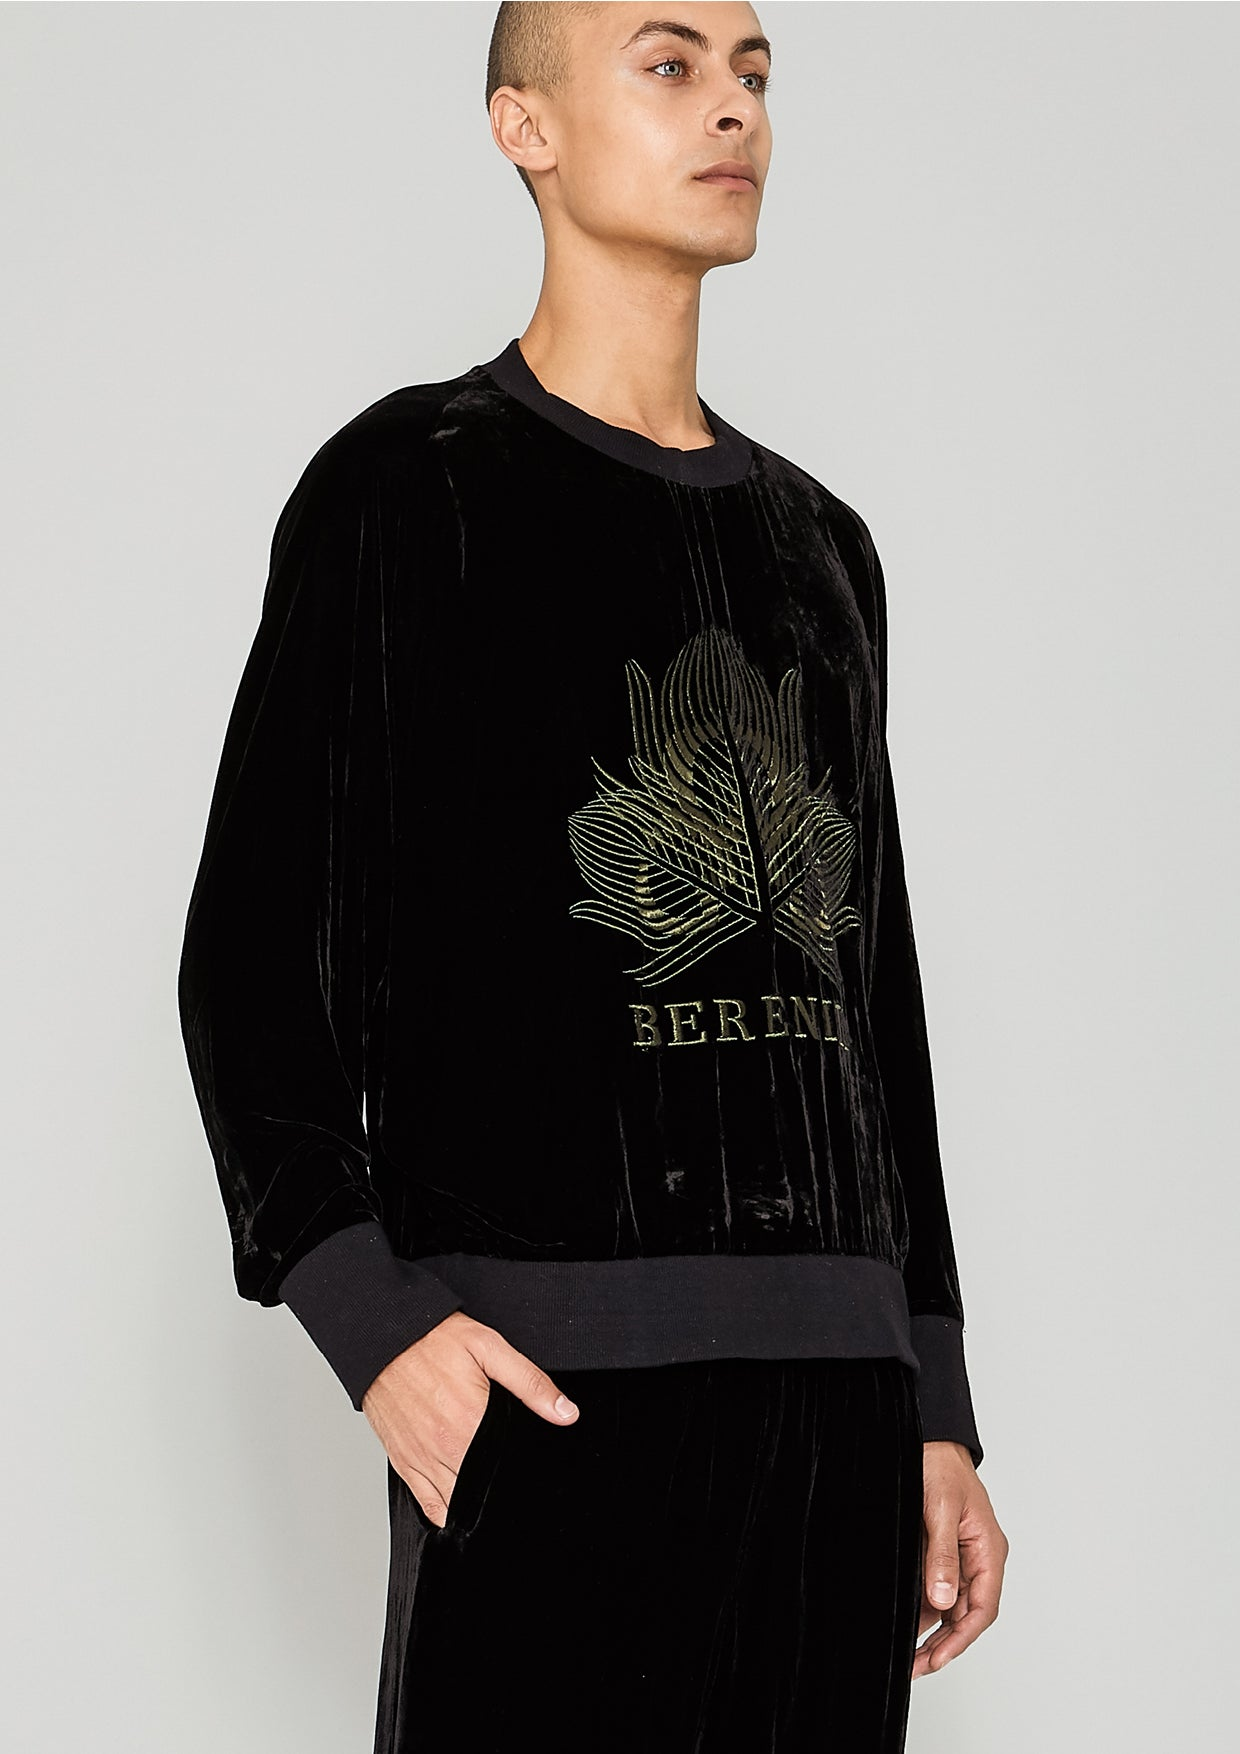 fe6250326a OVERSIZED SWEATER - SILK VELVET black with golden BERENIK embroidery